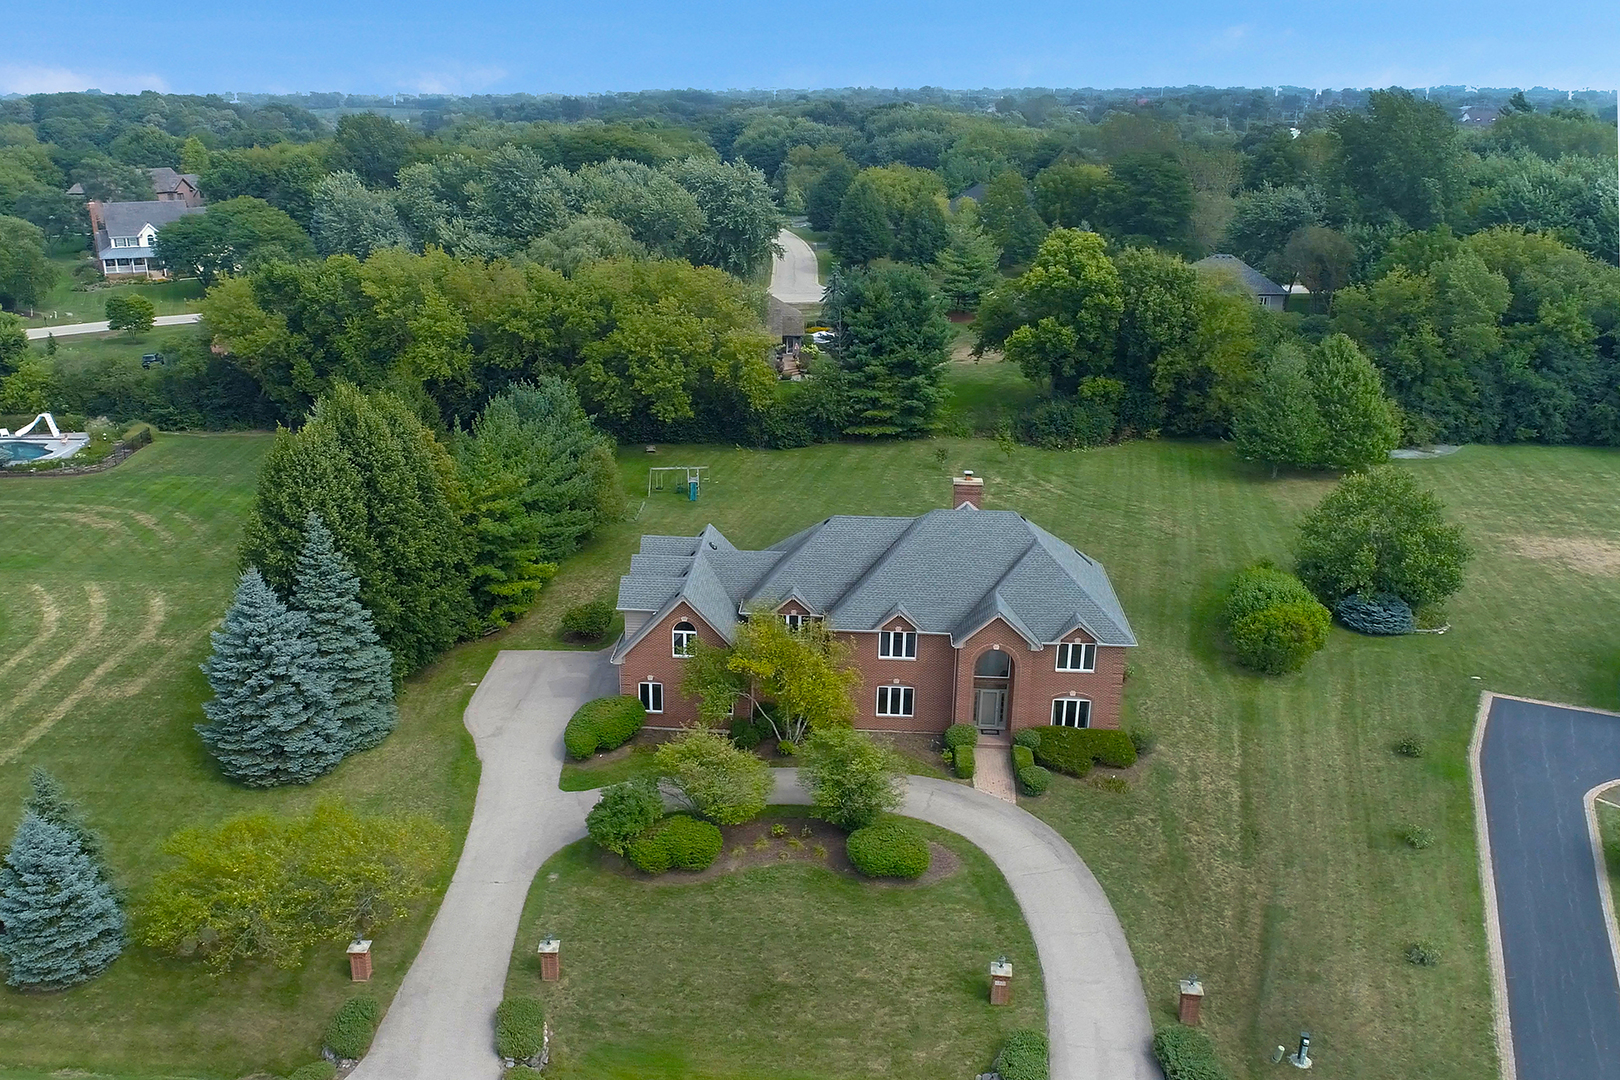 37 Copperfield Drive, Hawthorn Woods, Illinois 60047